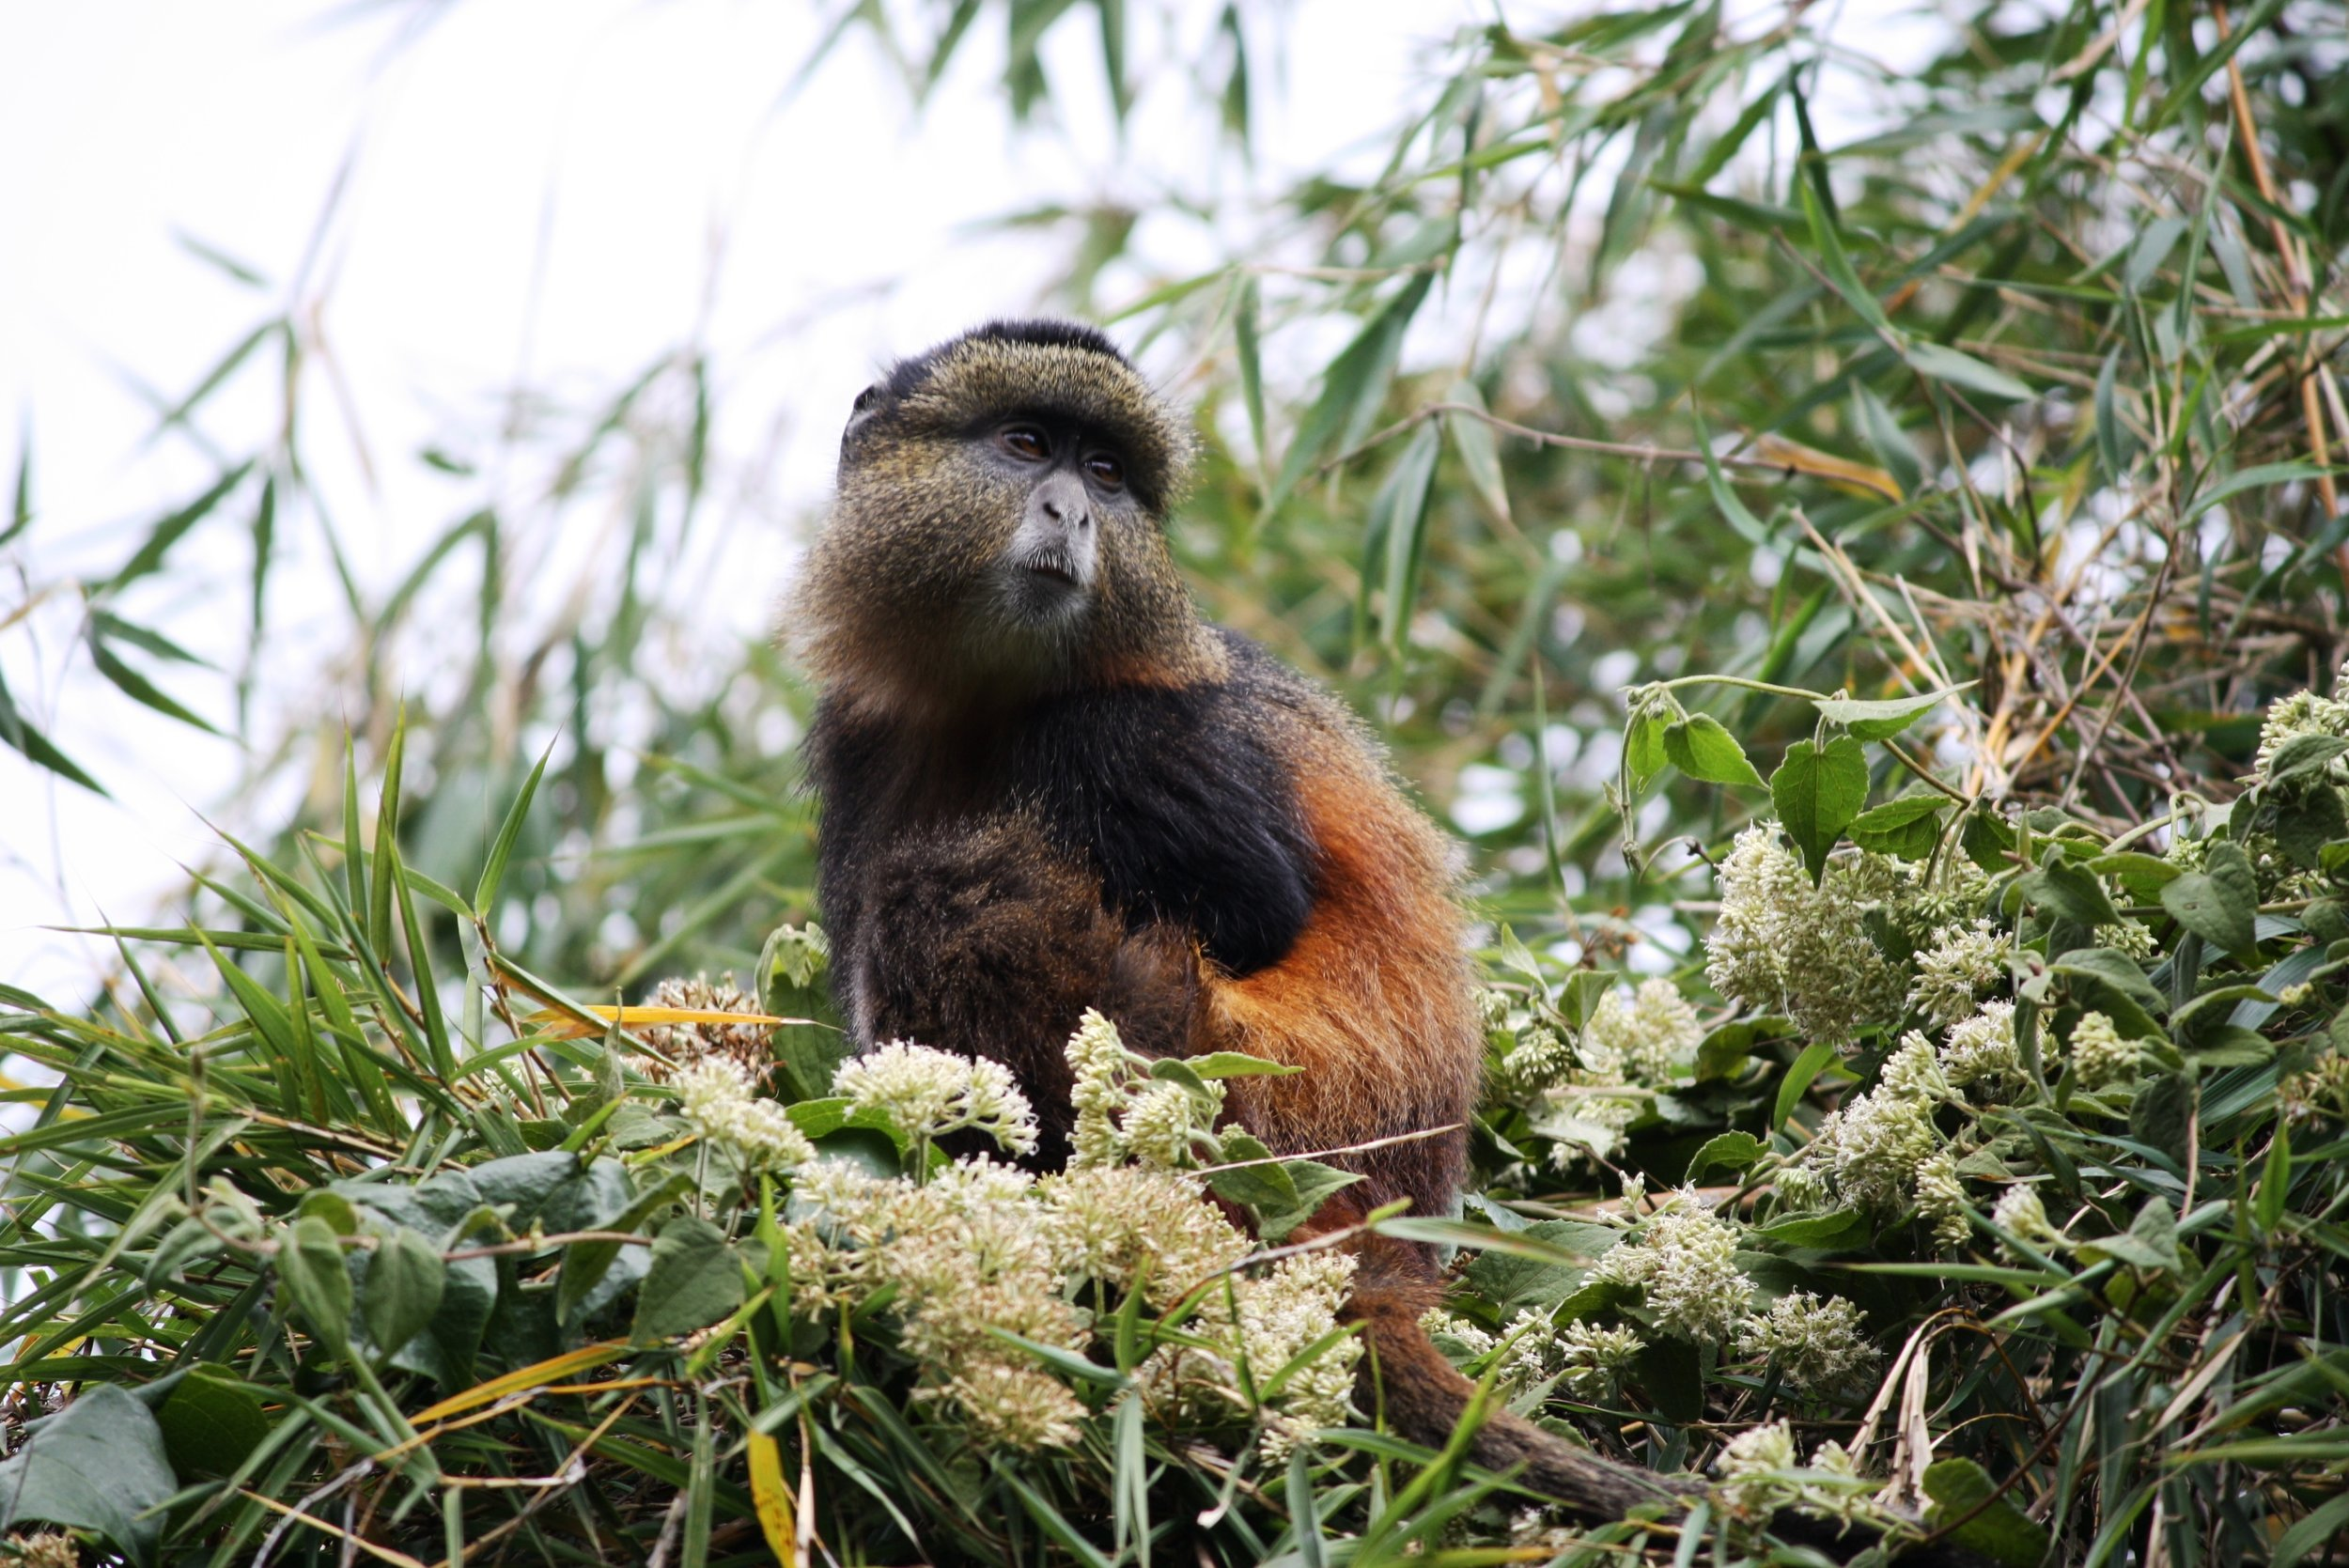 Encounter wild golden monkeys in their natural environment. -